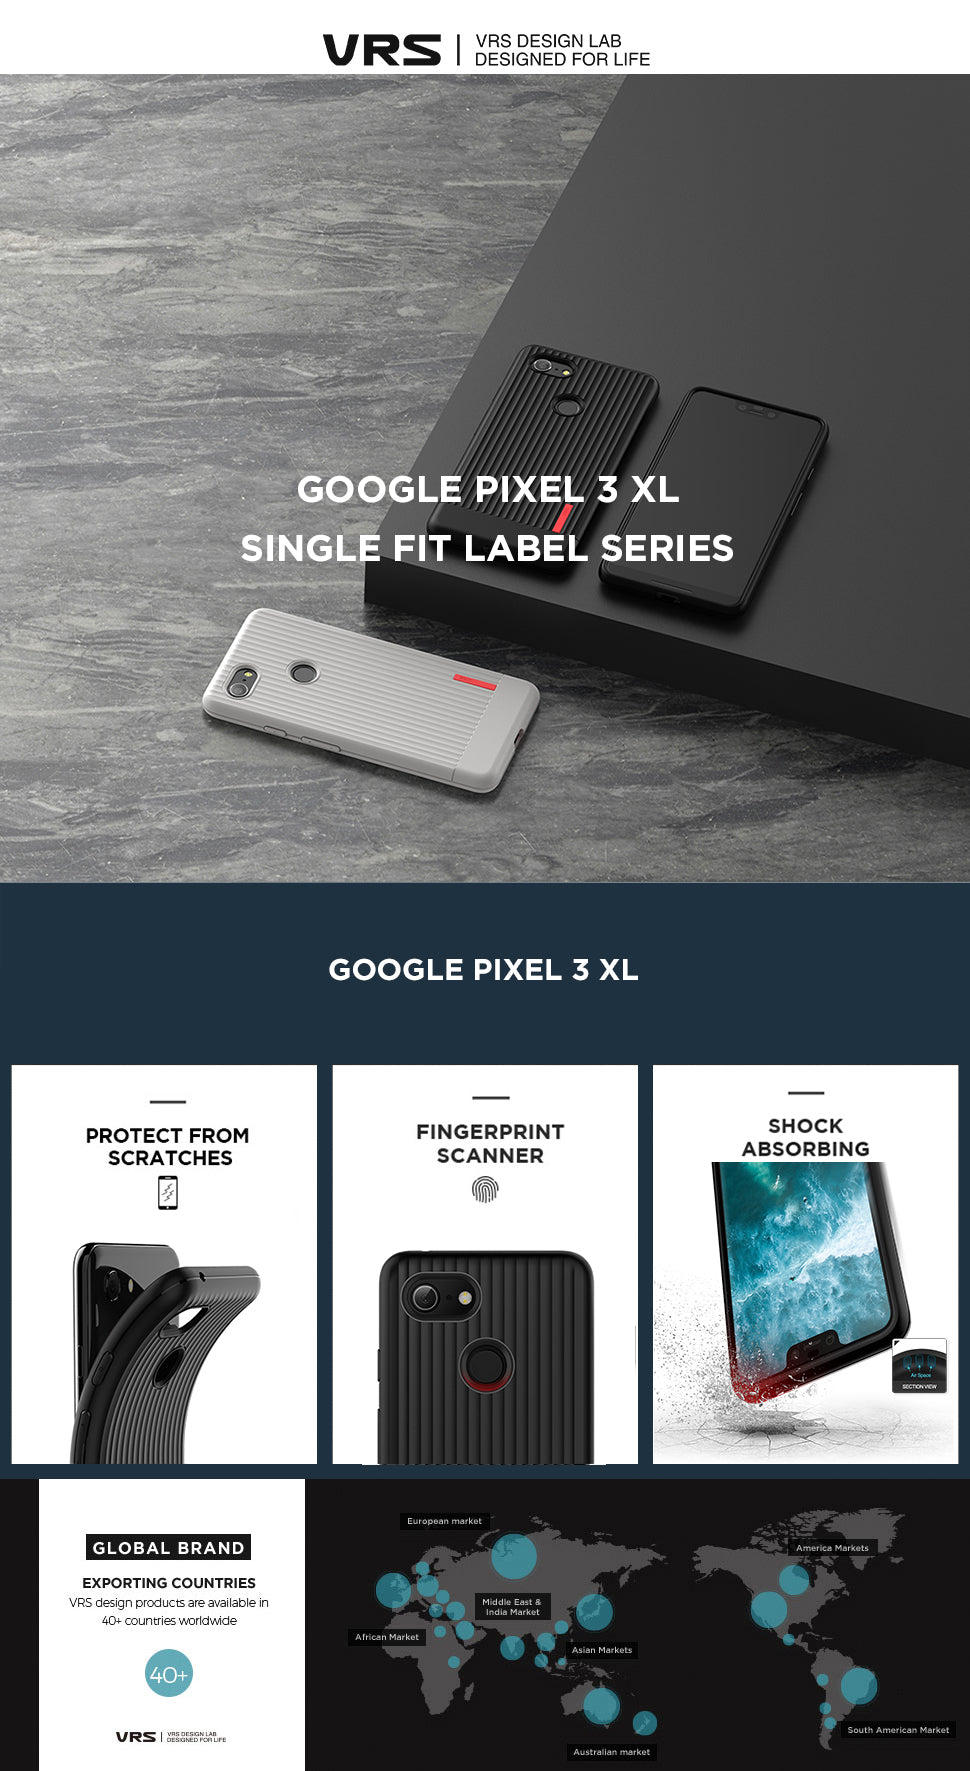 VRS Design | The Best Case for Google Pixel 3XL - Single Fit Label